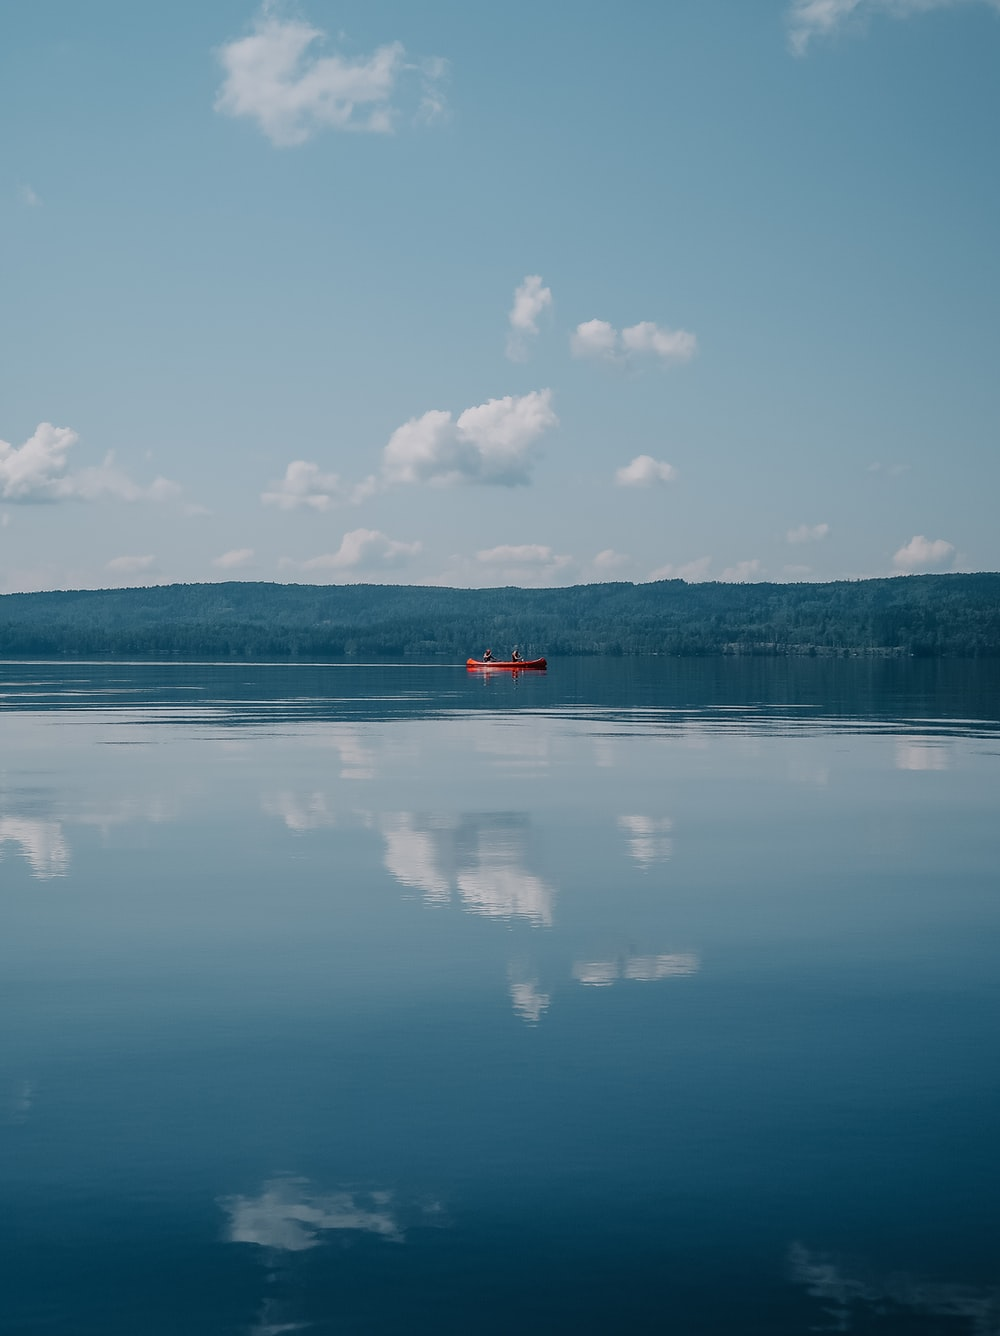 red boat on body of water under cloudy sky